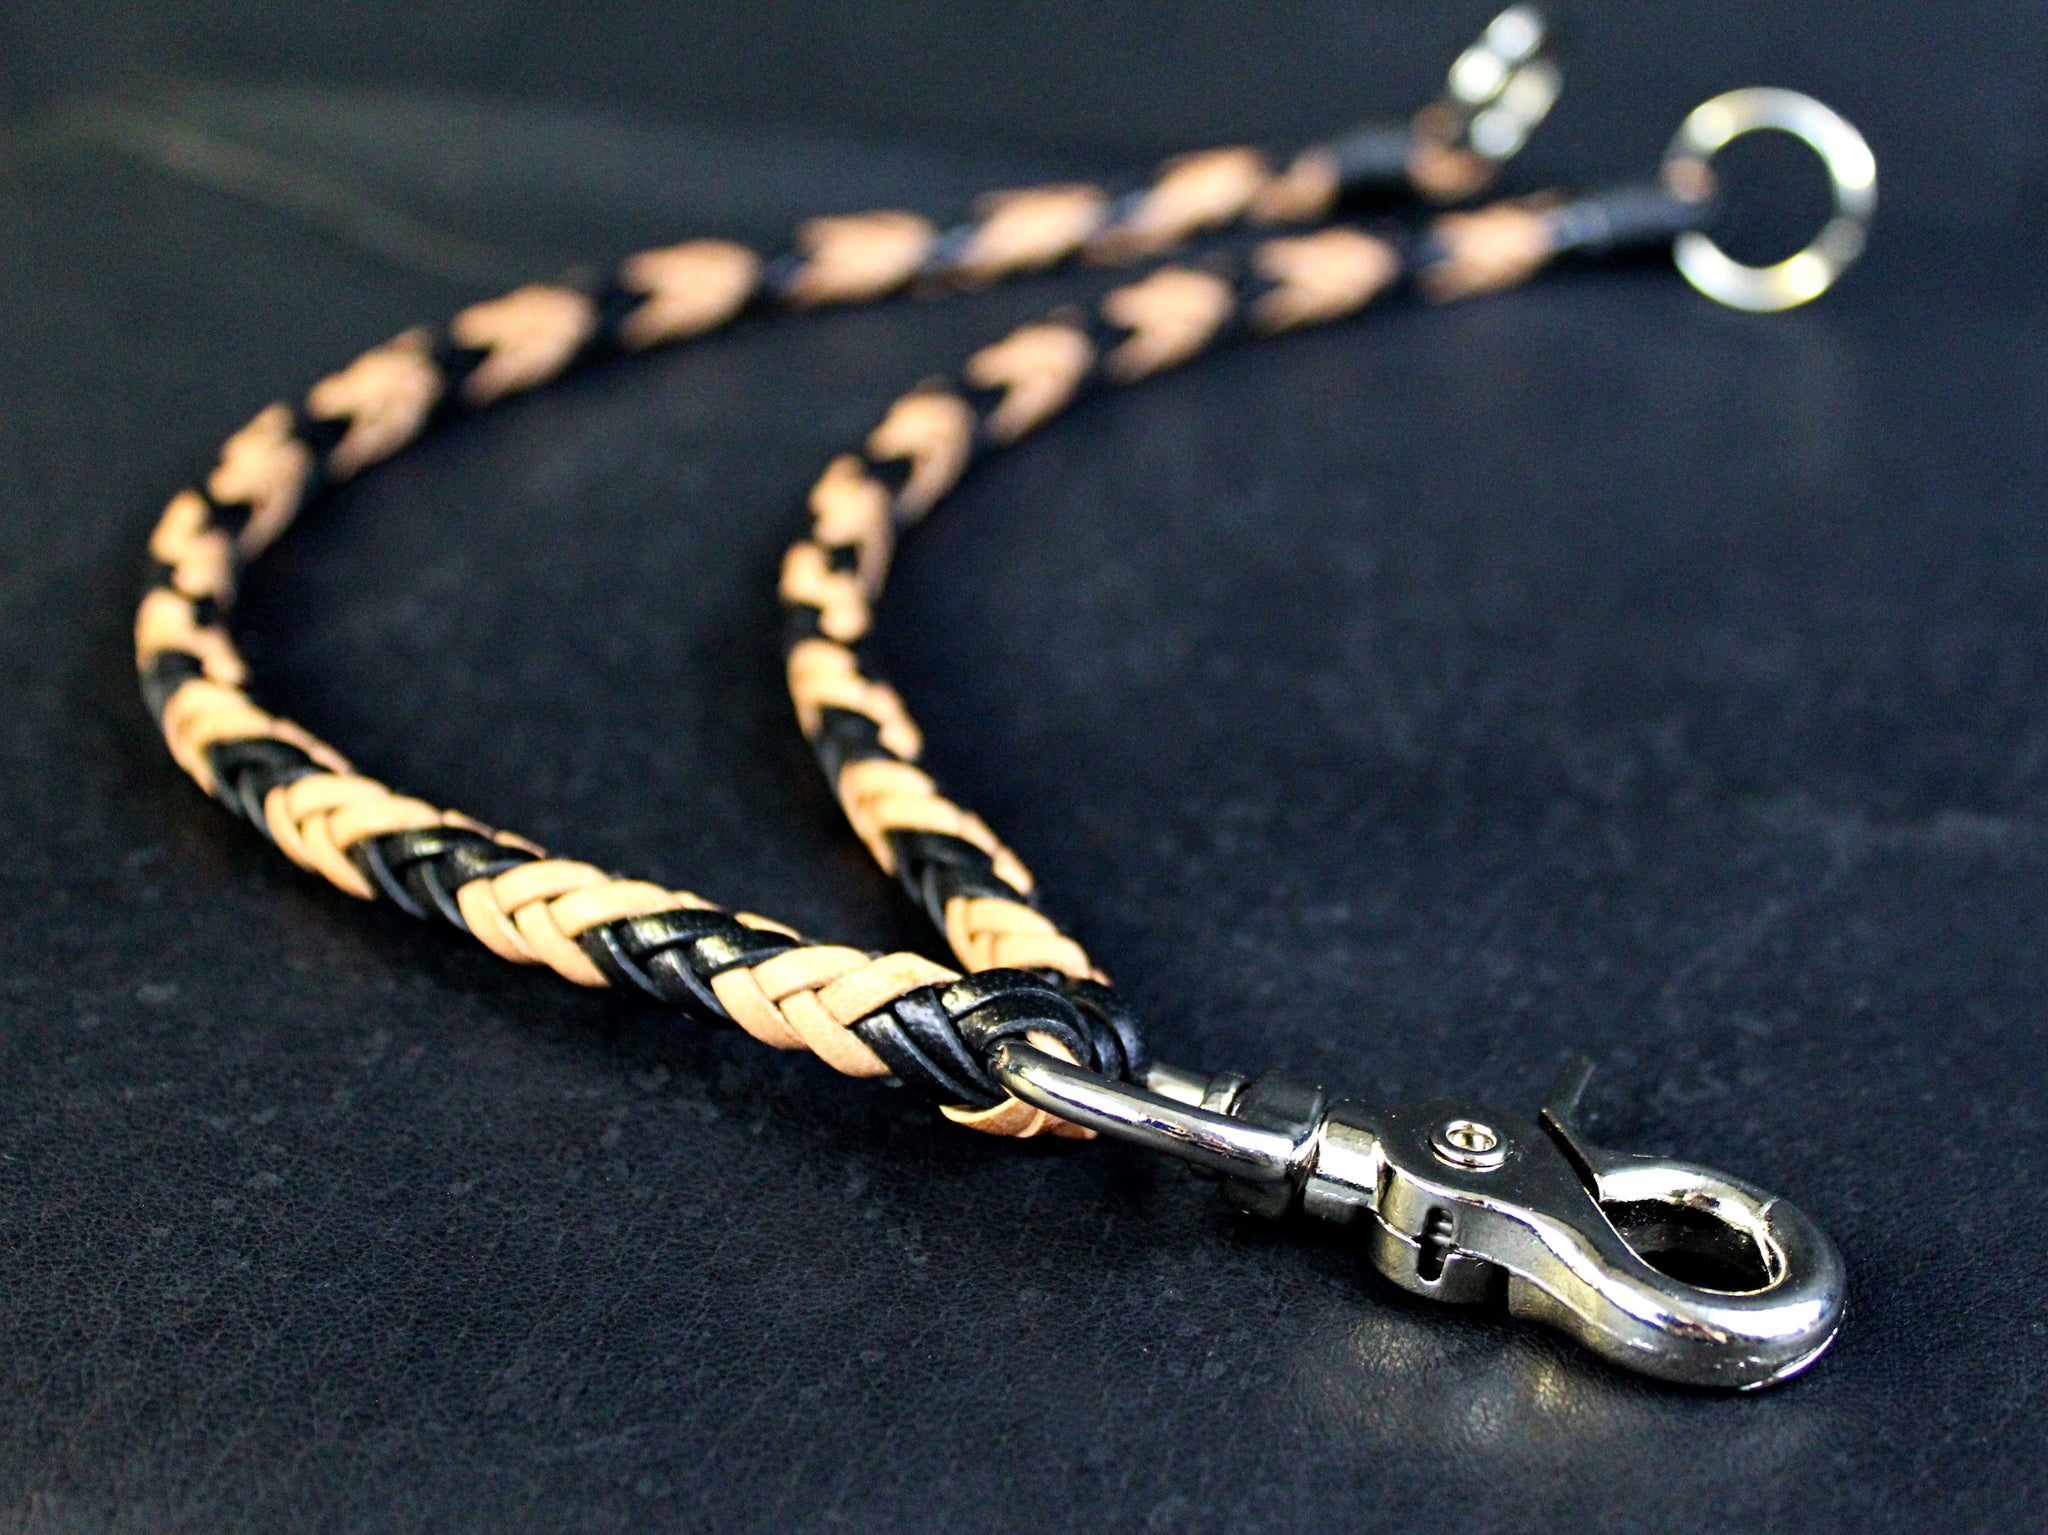 Mens double braided leather wallet chain two chains custom american made by san filippo leather